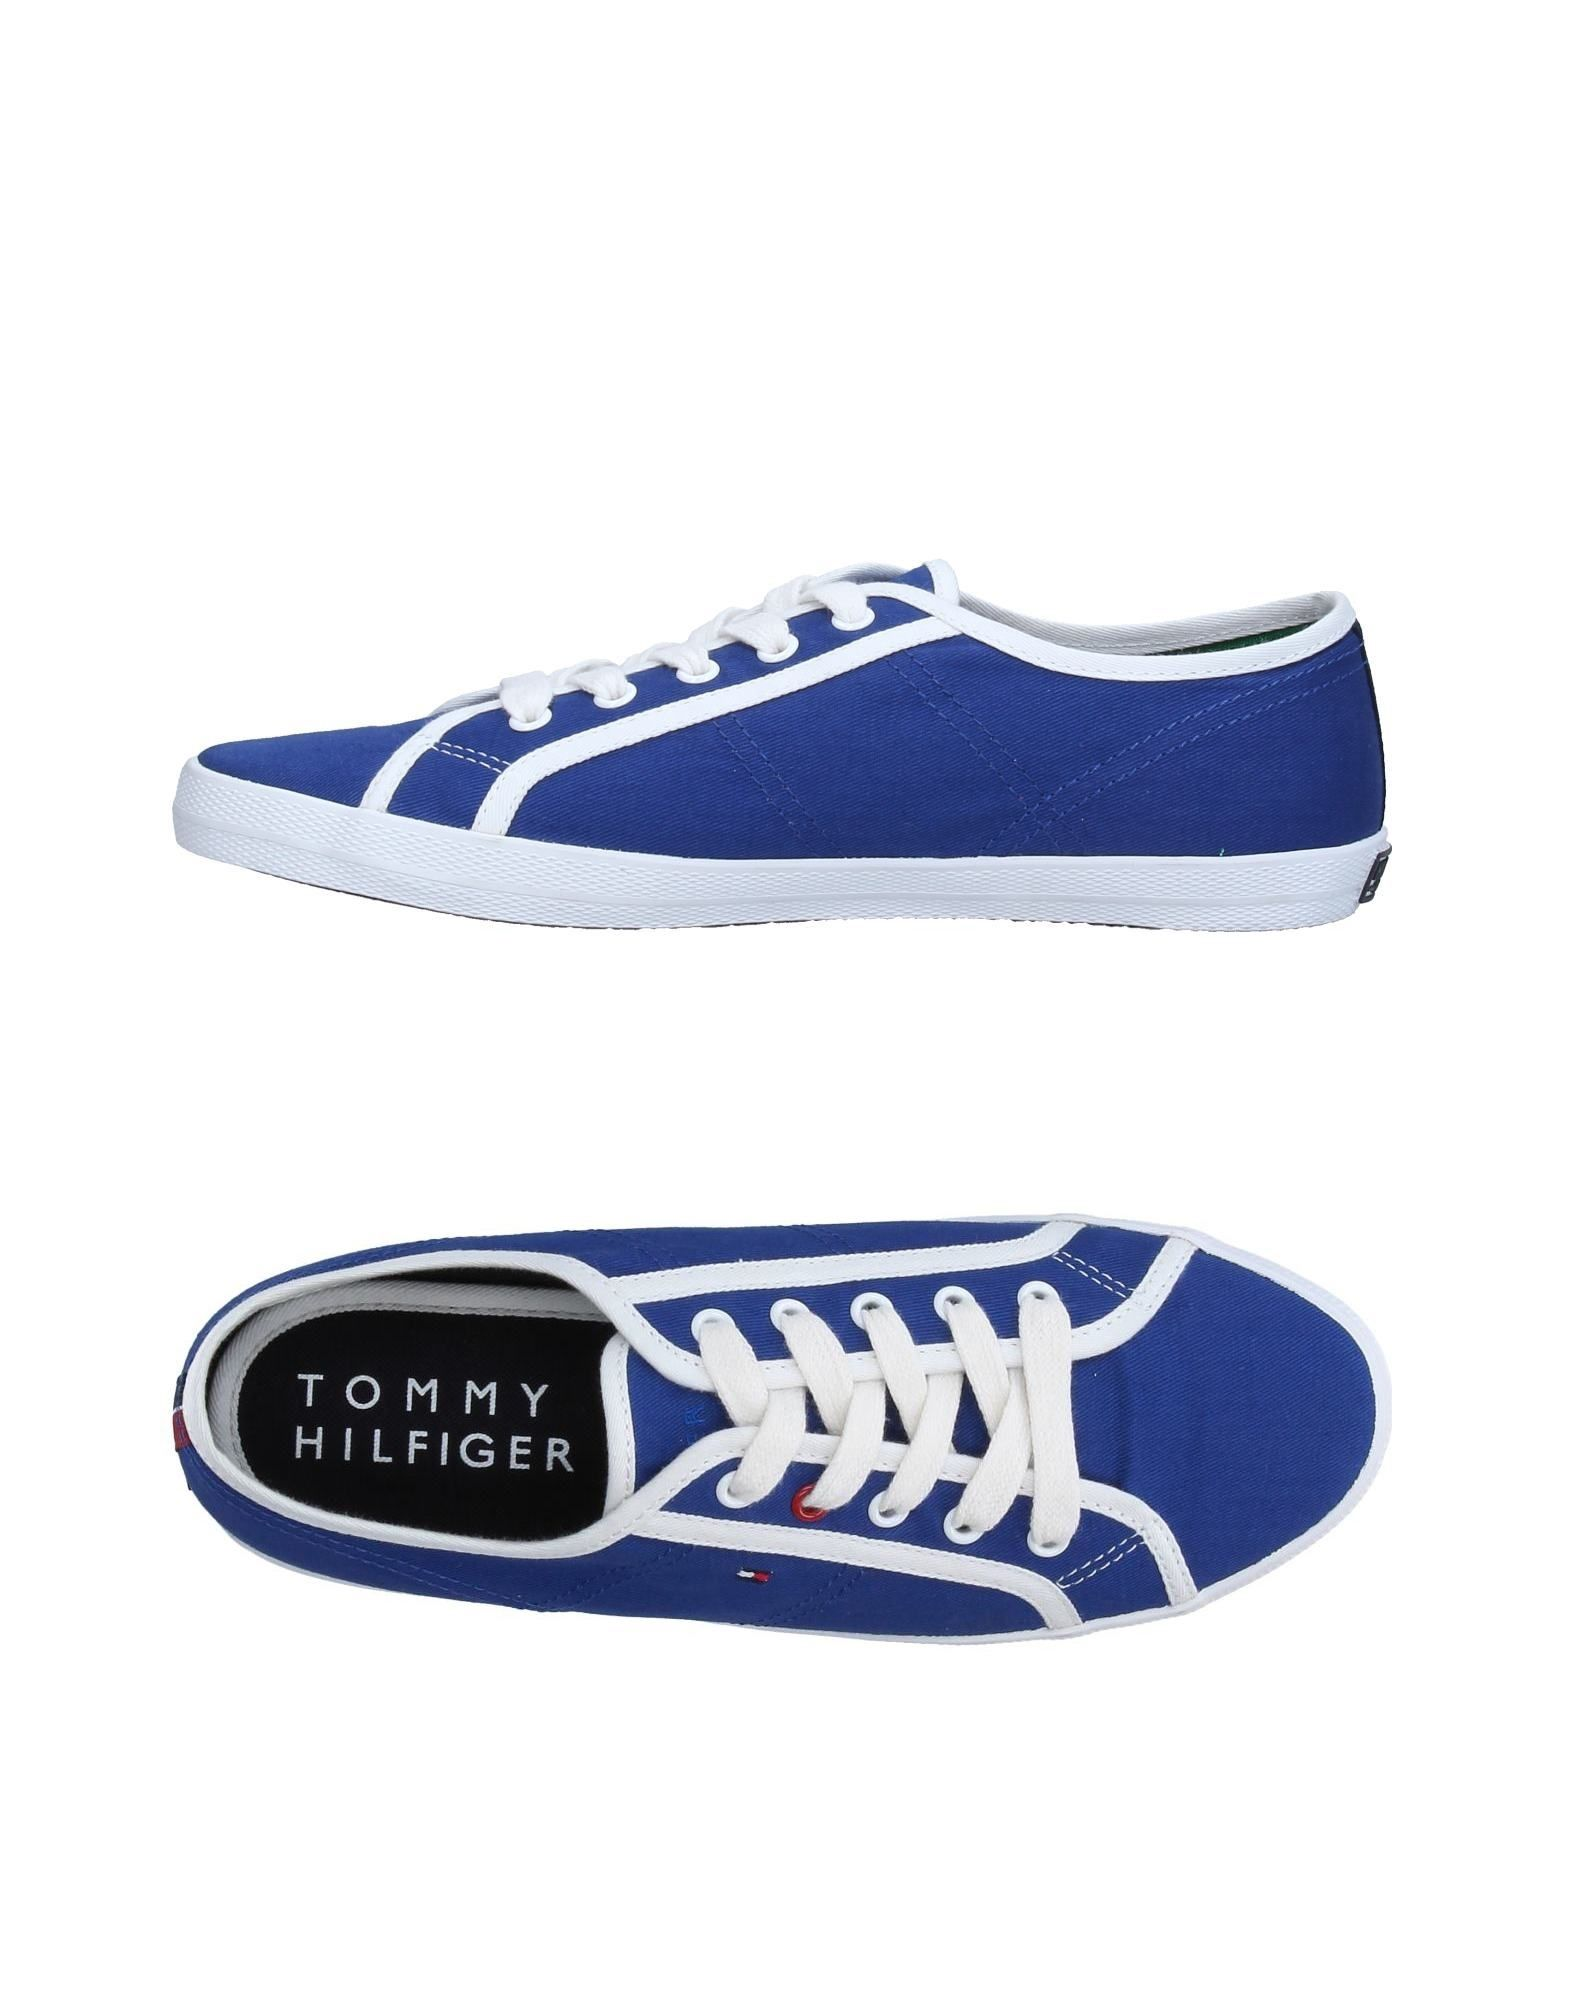 Sneakers 11261116BV Tommy Hilfiger Donna - 11261116BV Sneakers 6f5d3b